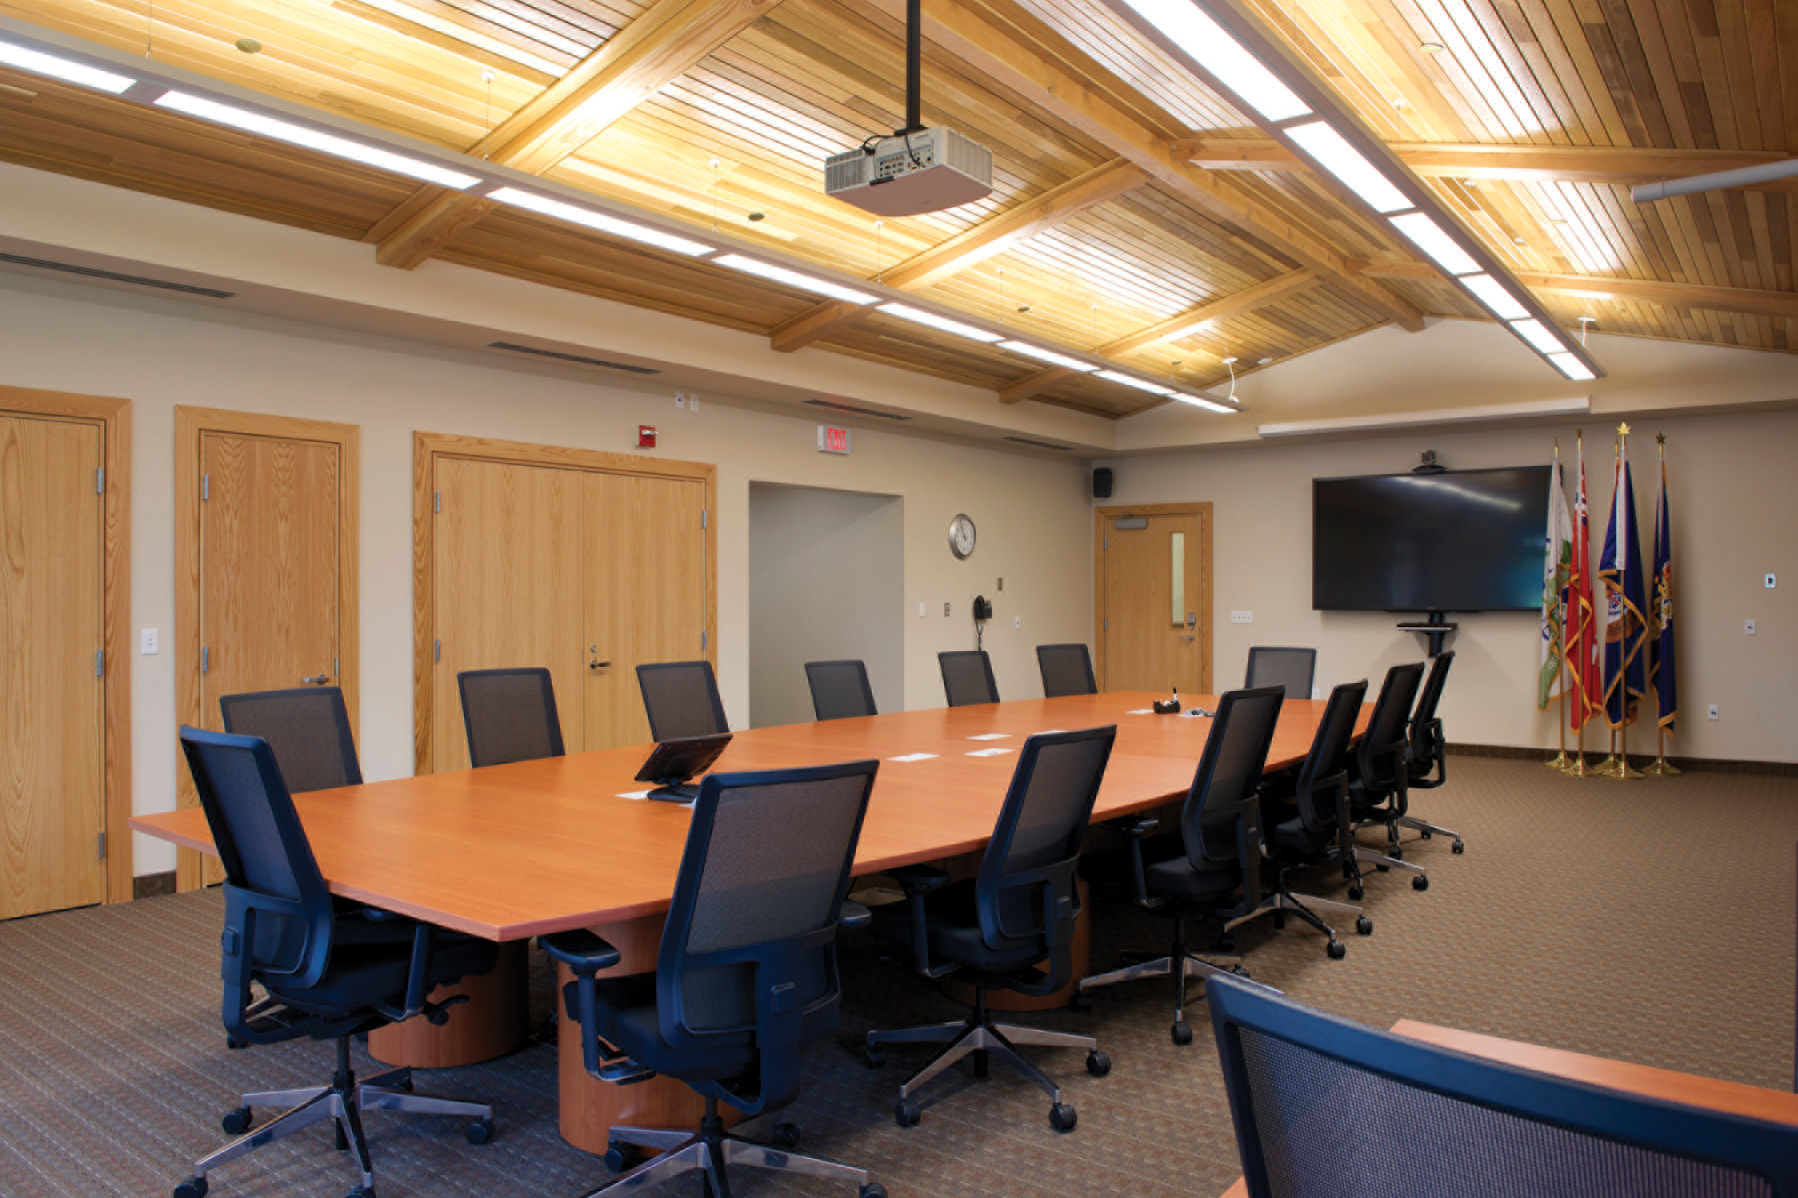 Board room with black mesh back chairs, slanted wood panel ceiling, hanging projector, TV and flag poles